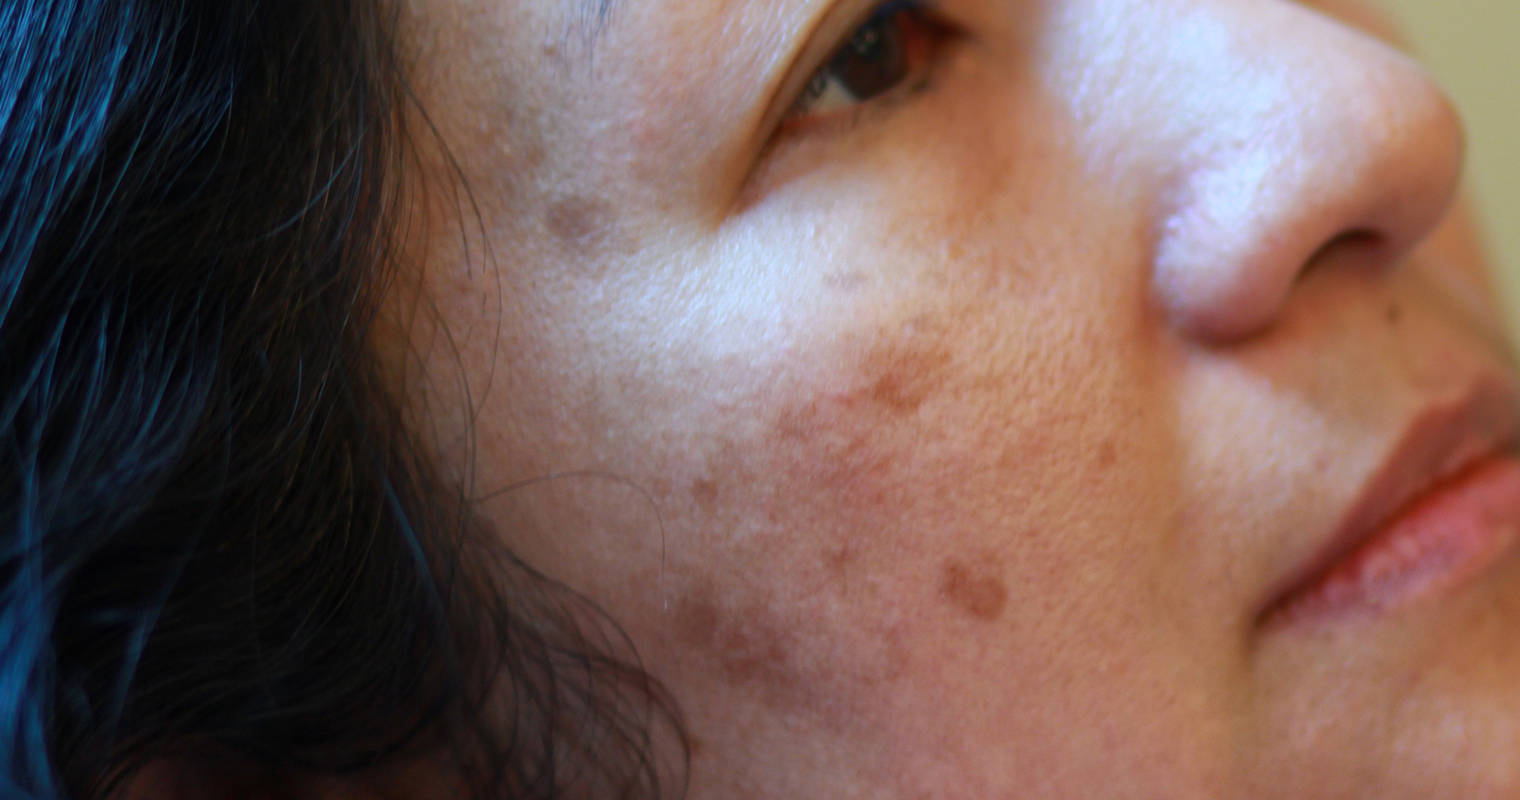 melasma on the right side of a woman's face